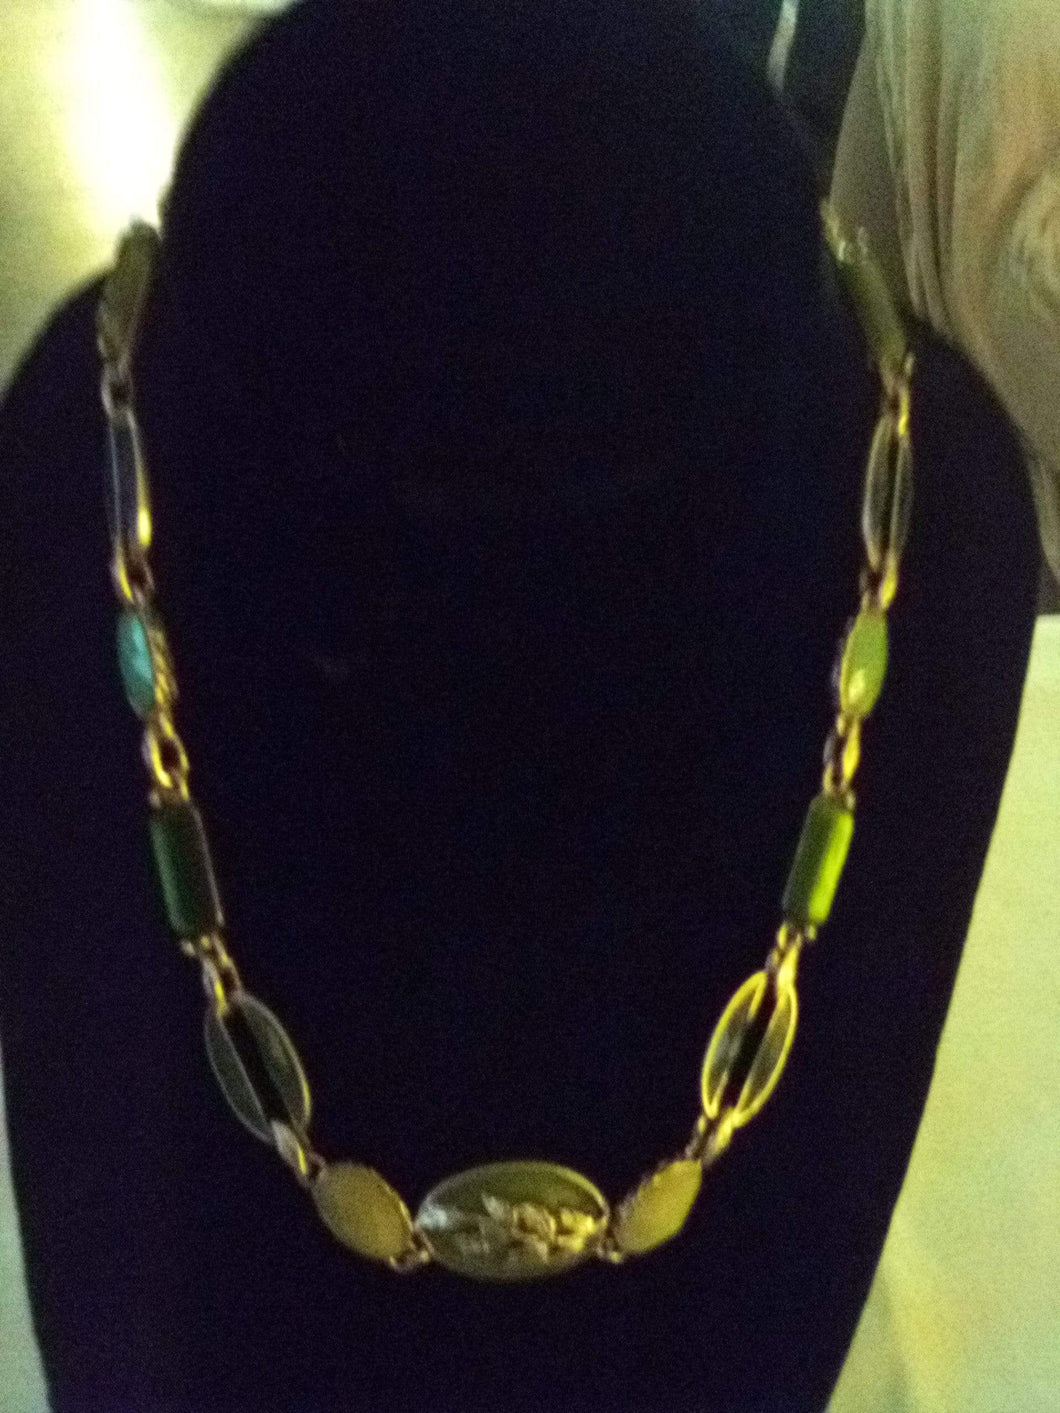 Dressy beautiful and colorful necklace - B&P'sringsnthings